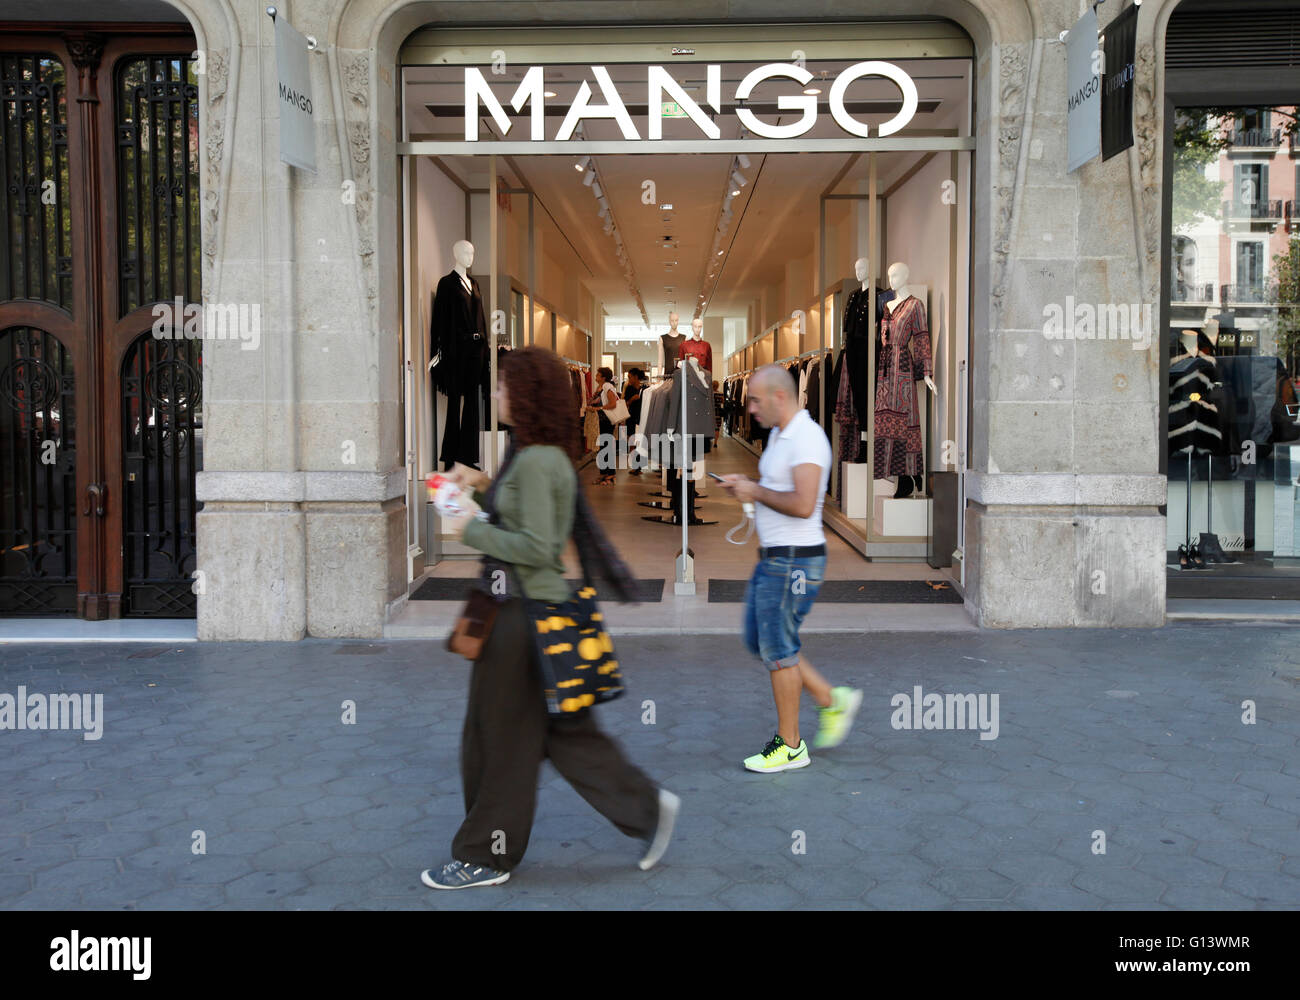 d8a0bf5f1a Mango Clothes Shop Immagini & Mango Clothes Shop Fotos Stock - Alamy